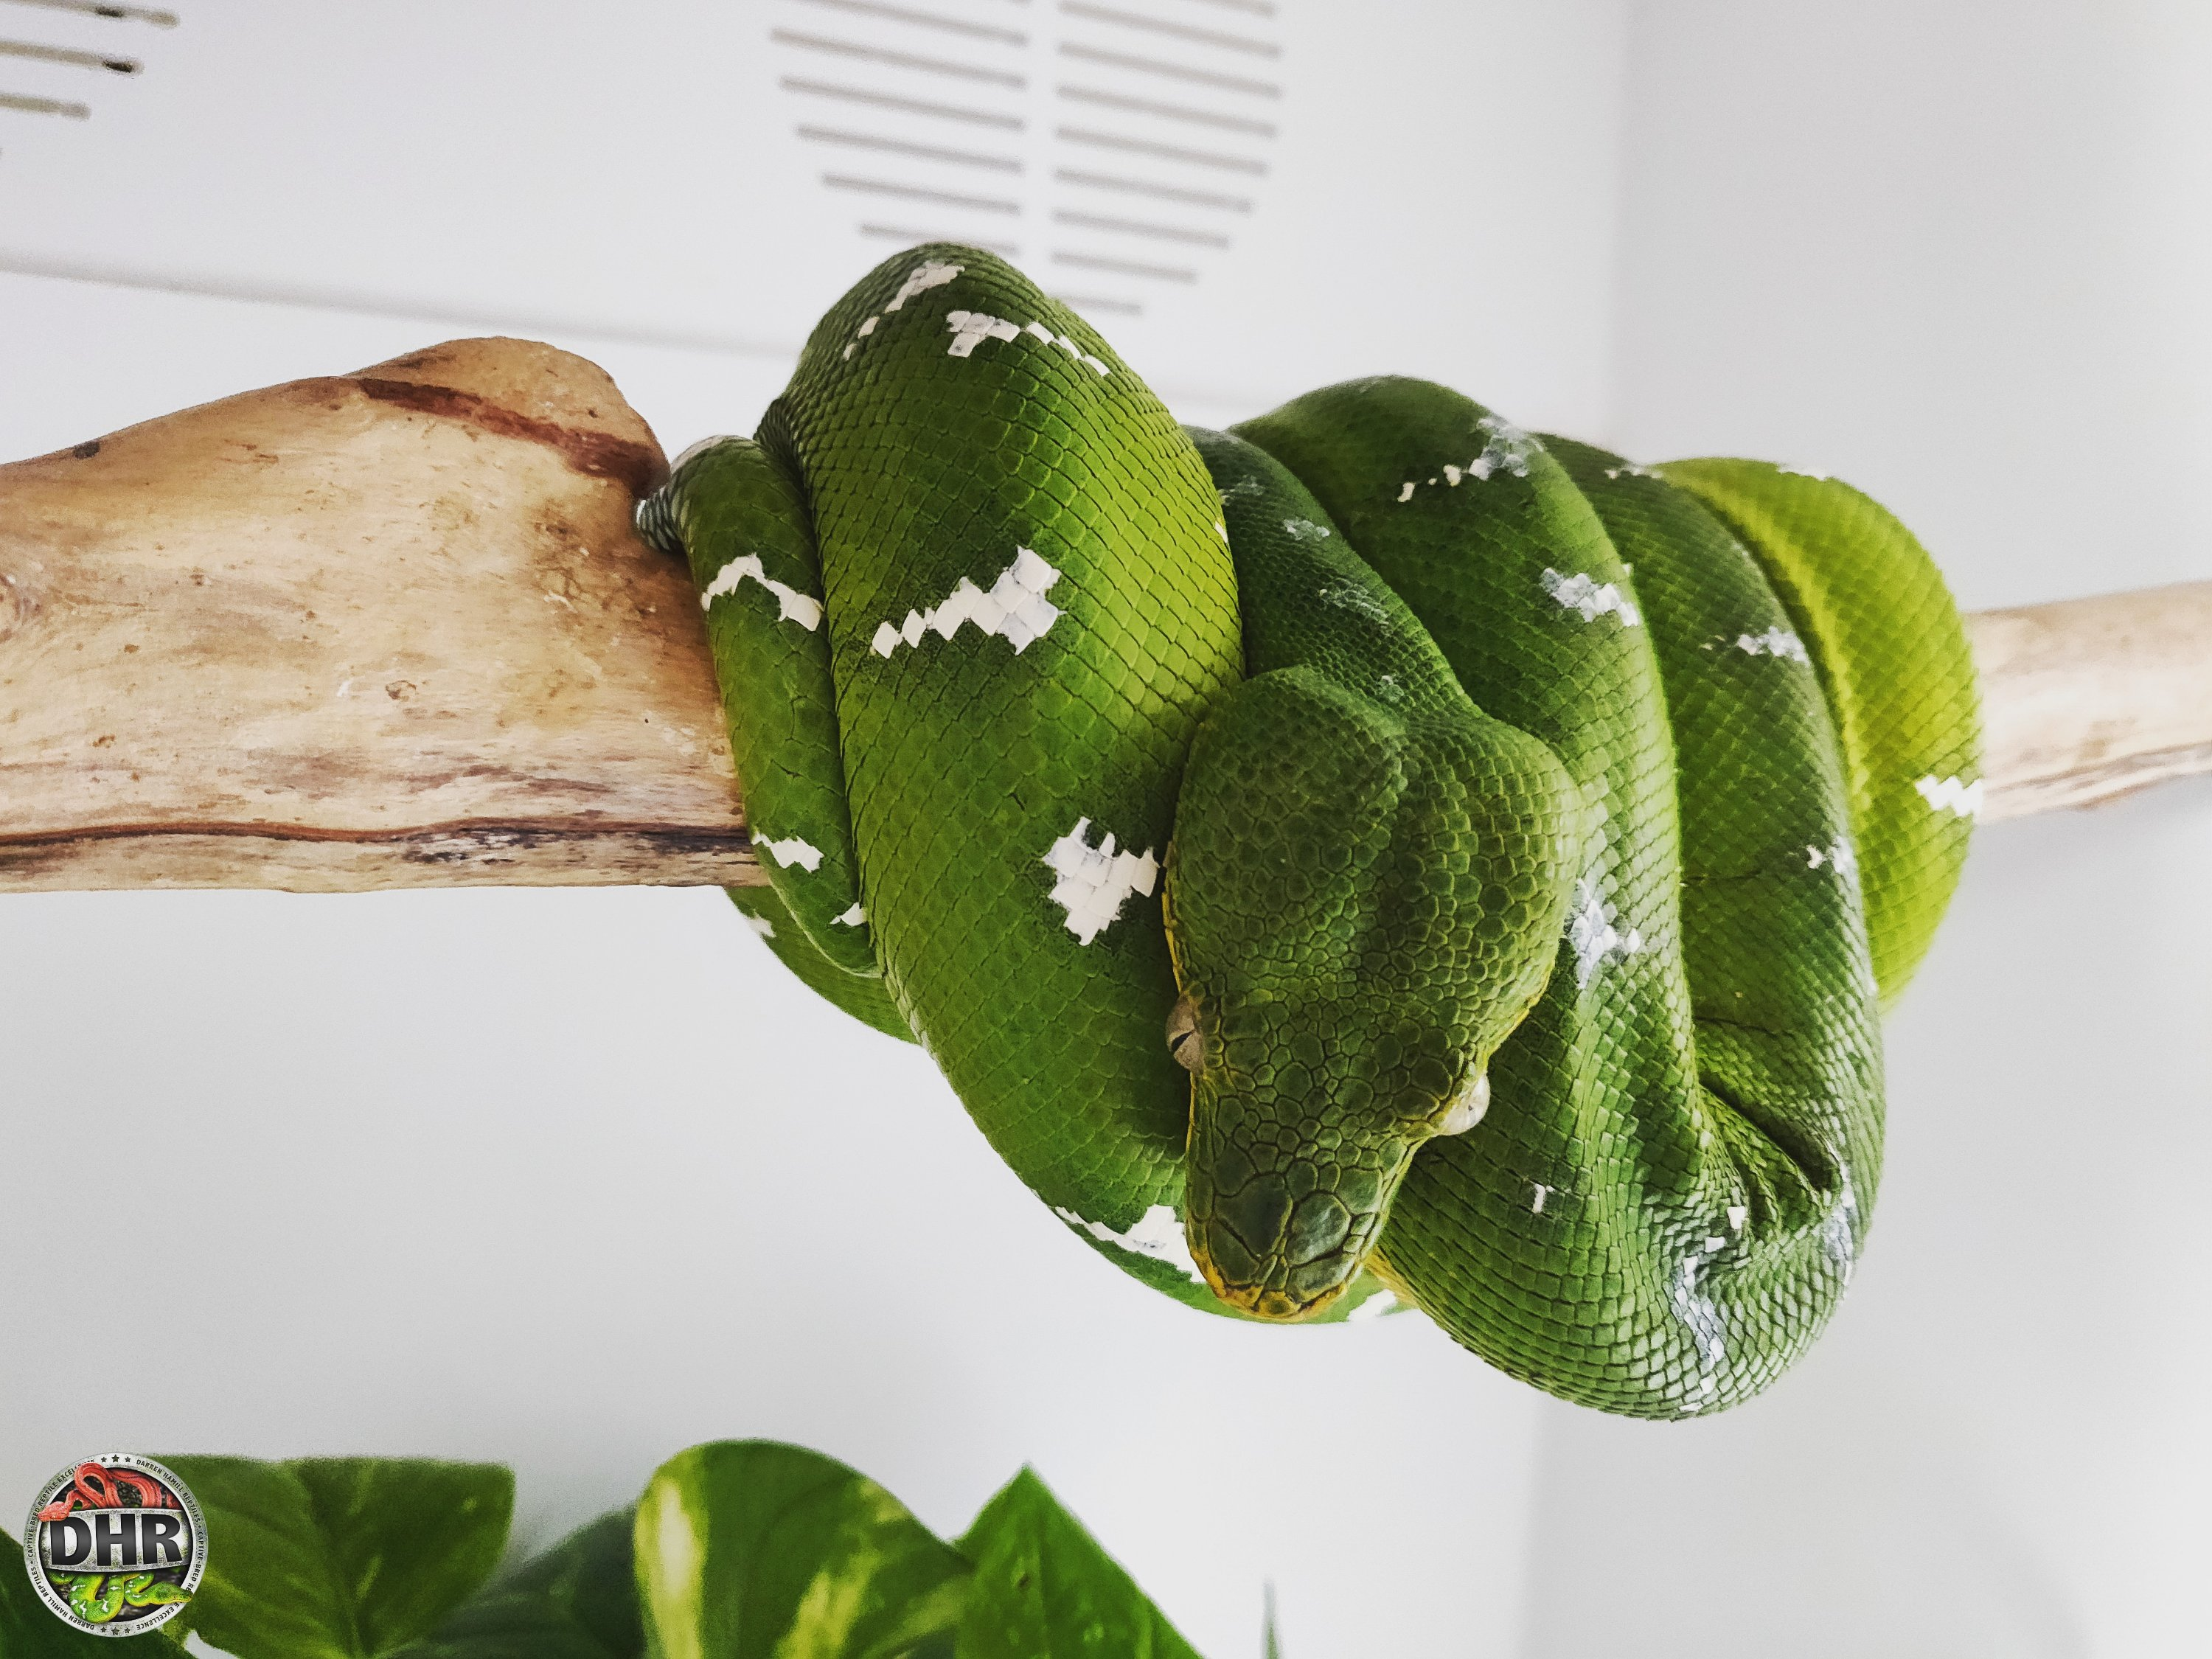 An adult male Northern Emerald Tree Boa (Corallus caninus) chilling on his perch.